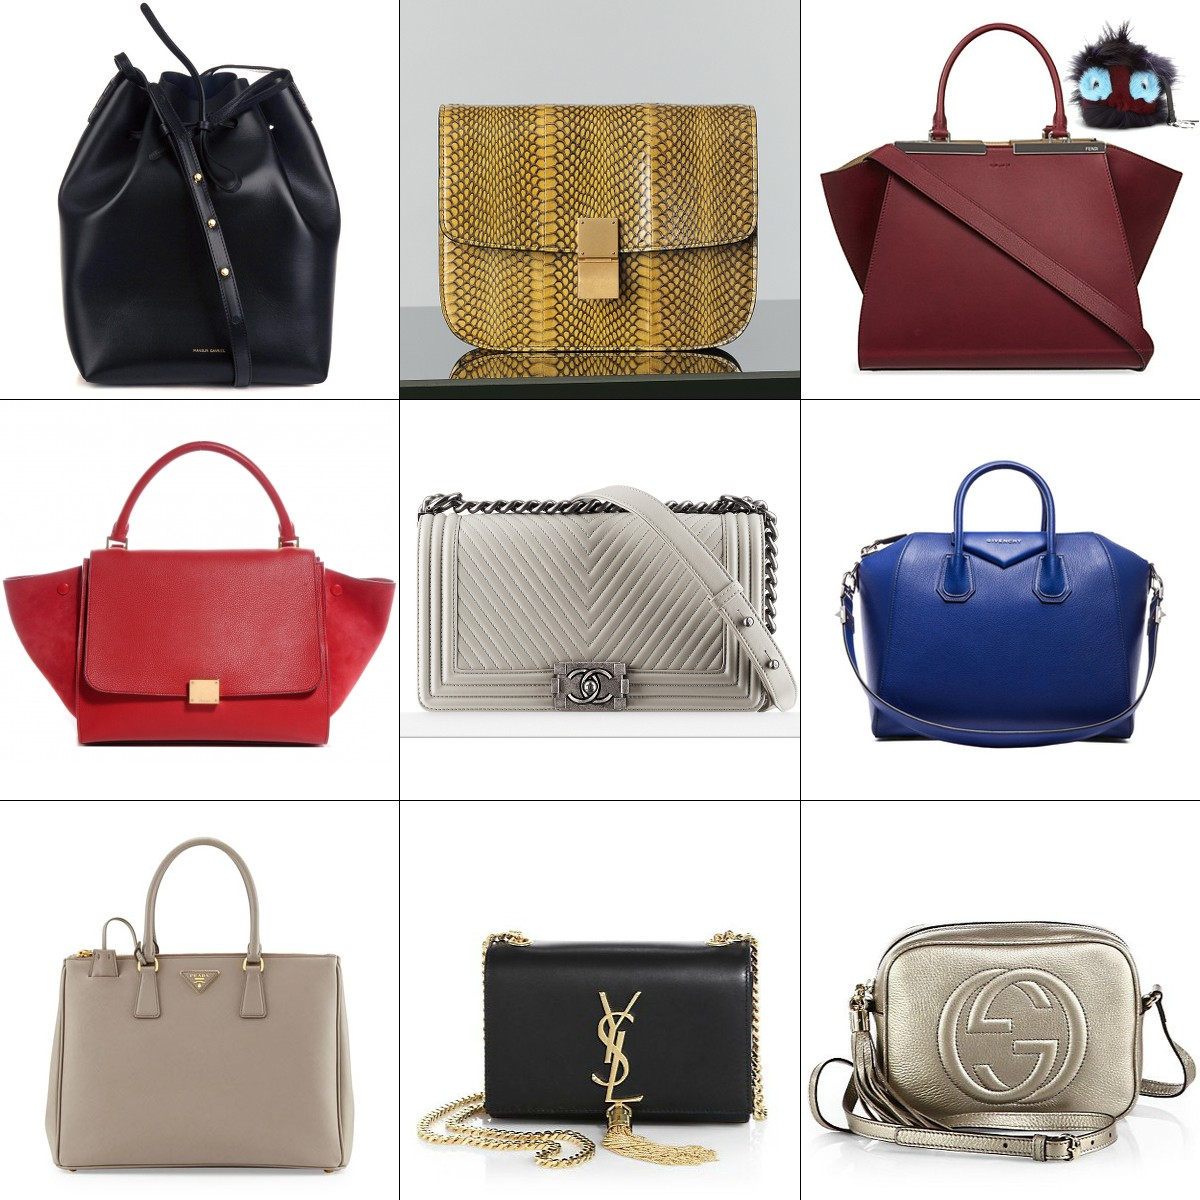 where to buy celine handbag